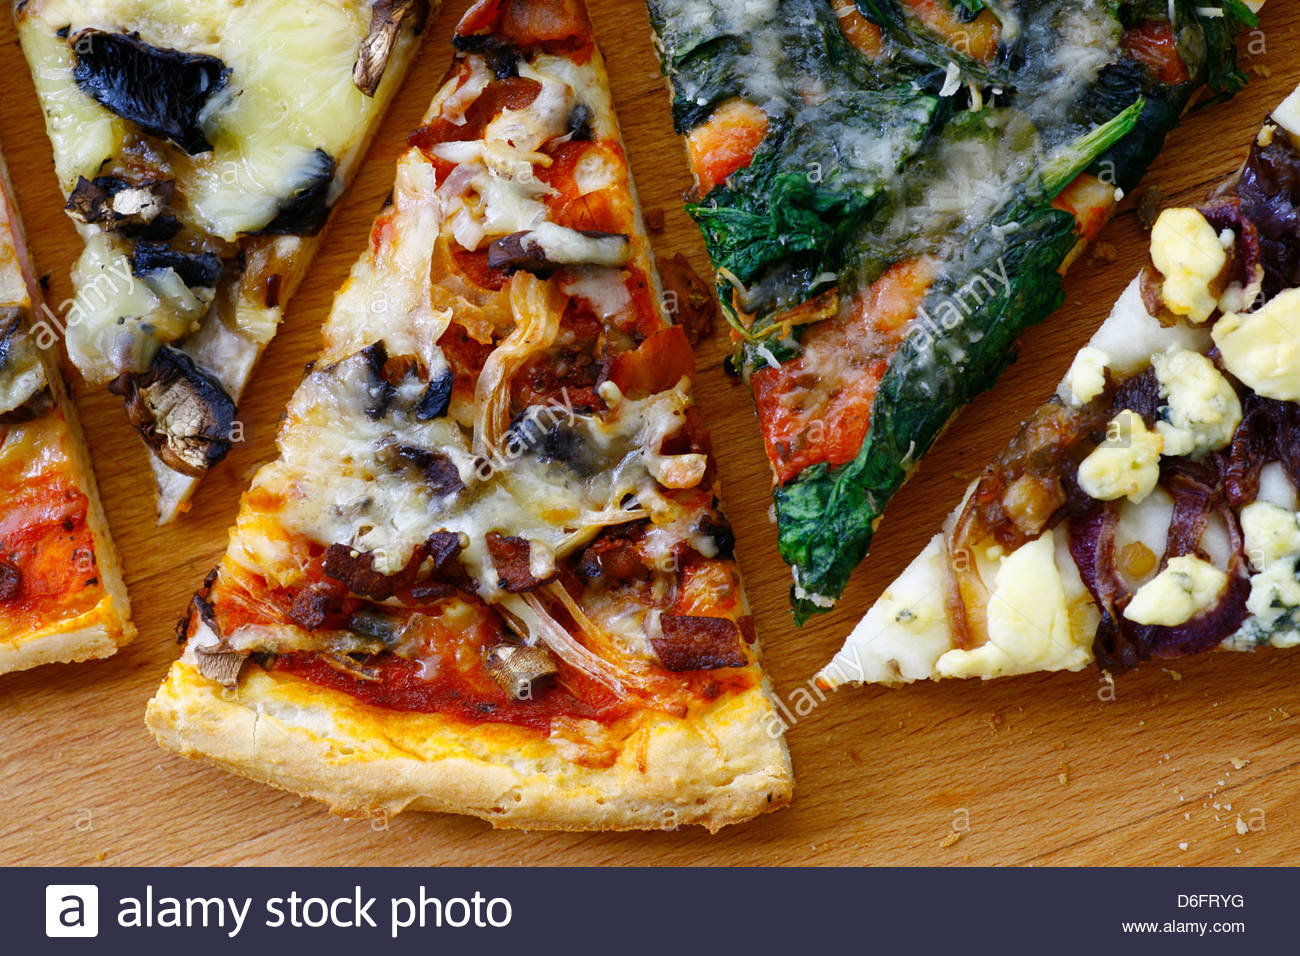 Gluten free selection pizza slices - Stock Image